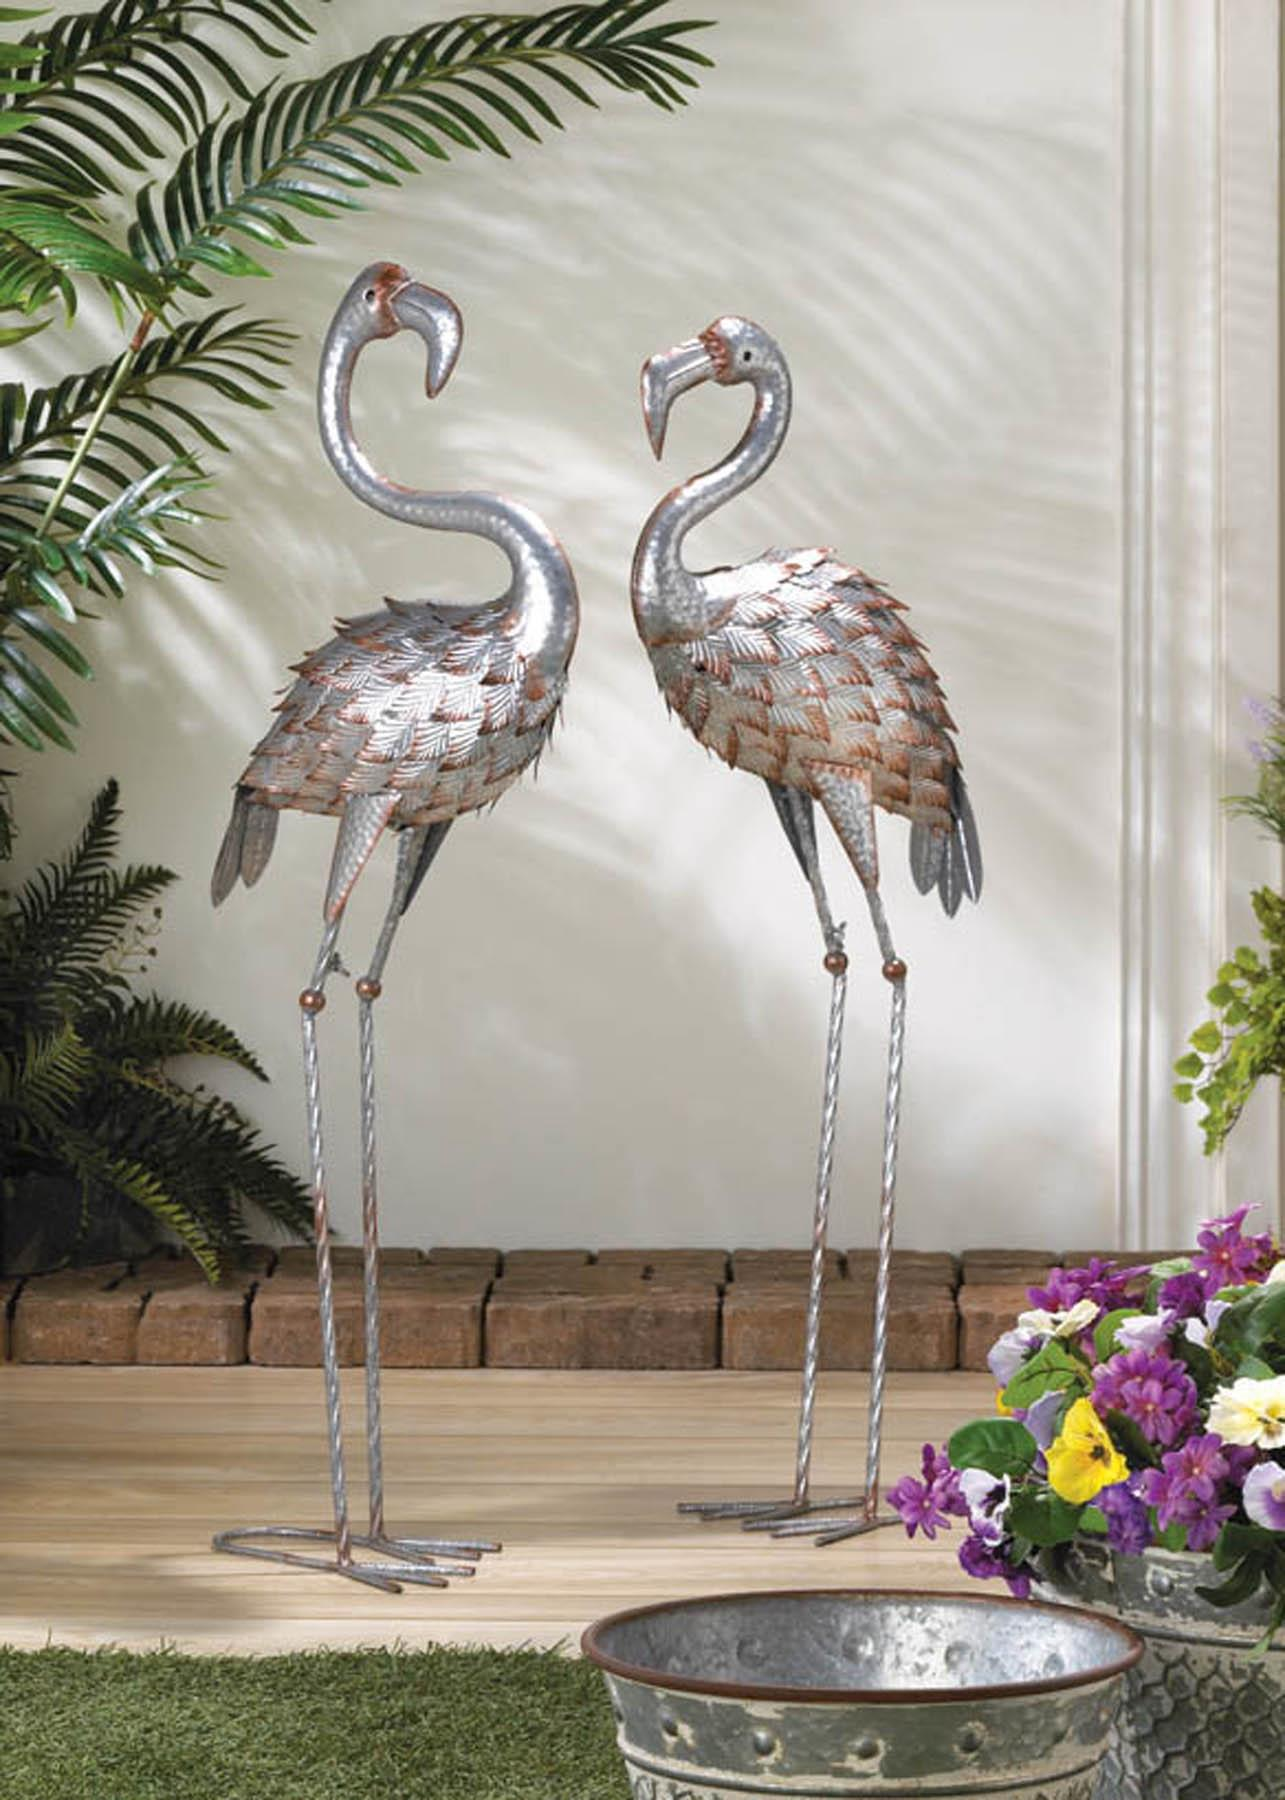 STANDING TALL GALVANIZED FLAMINGO STATUE 10018785